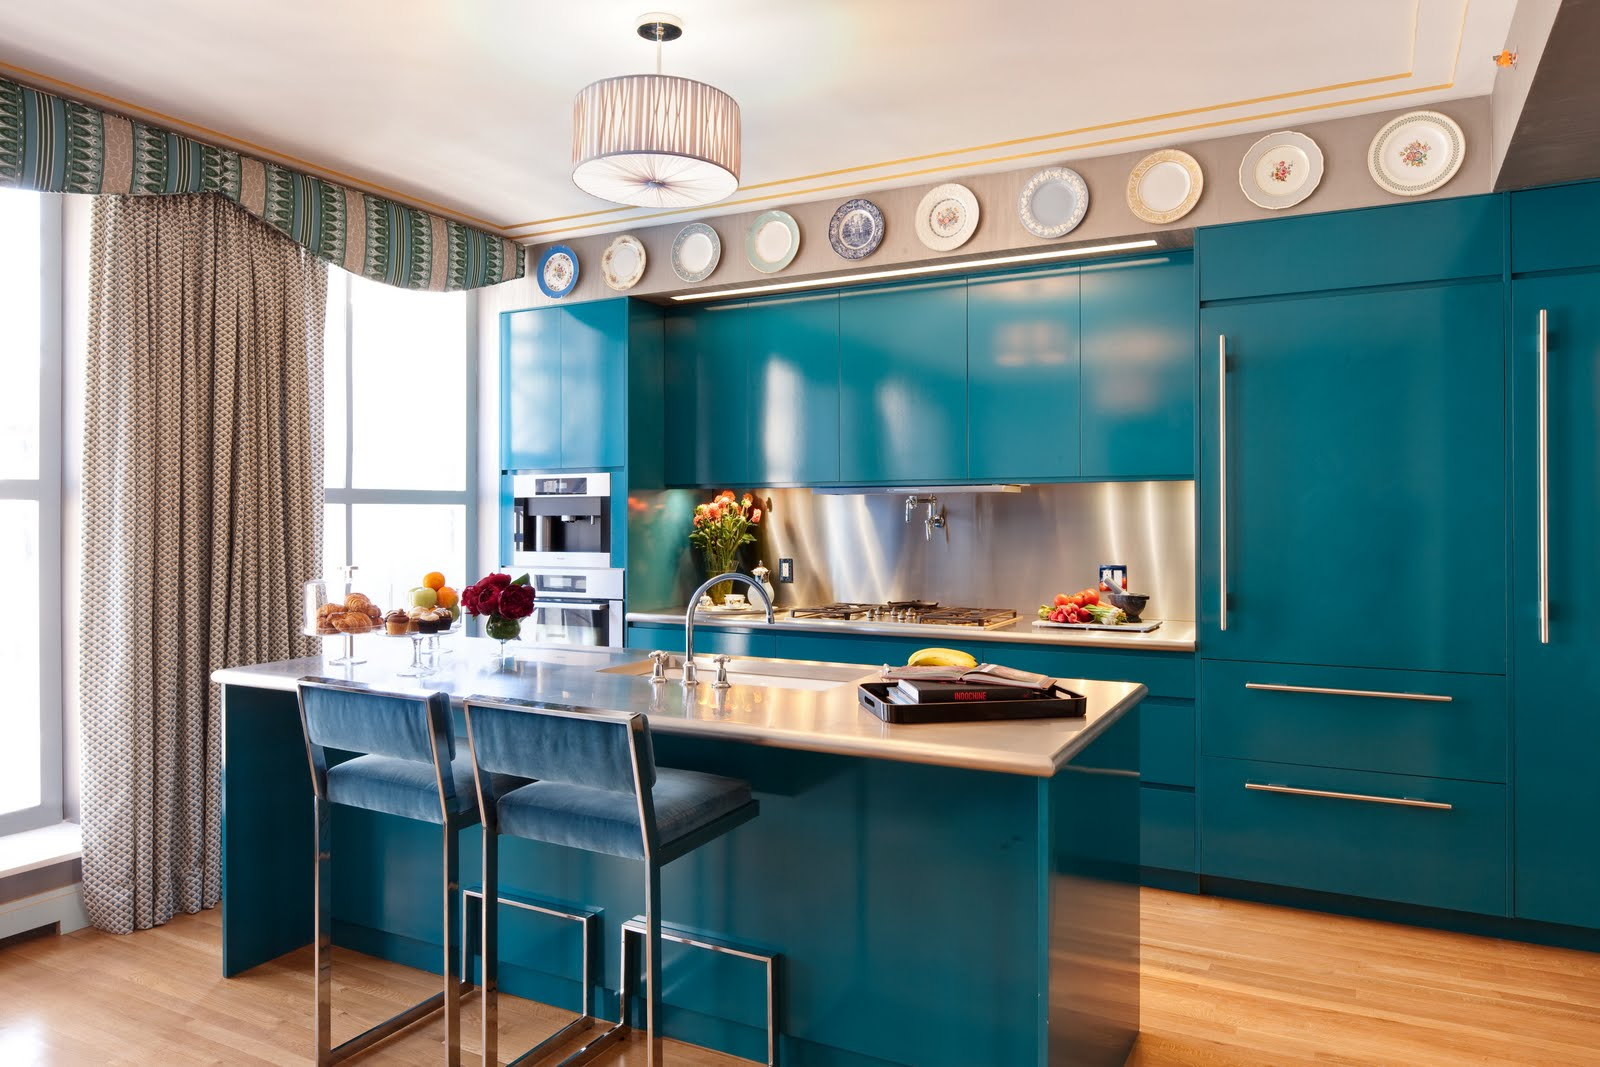 Kitchen Cabinet Color Schemes  londonlanguagelabcom